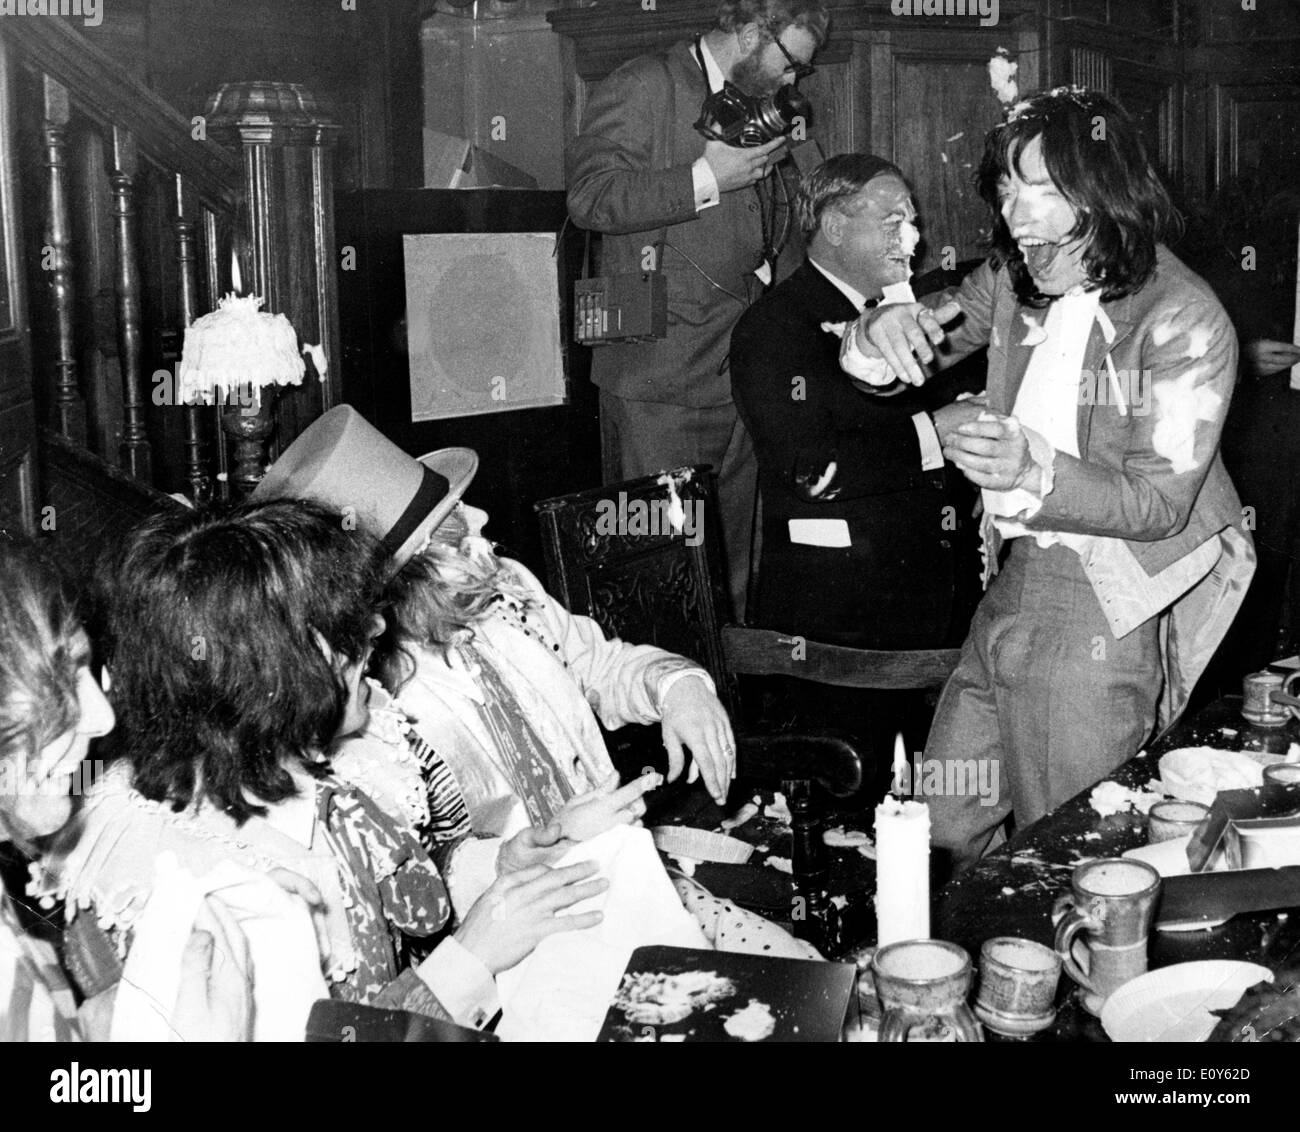 Mick Jagger and The Stones have cake fight - Stock Image